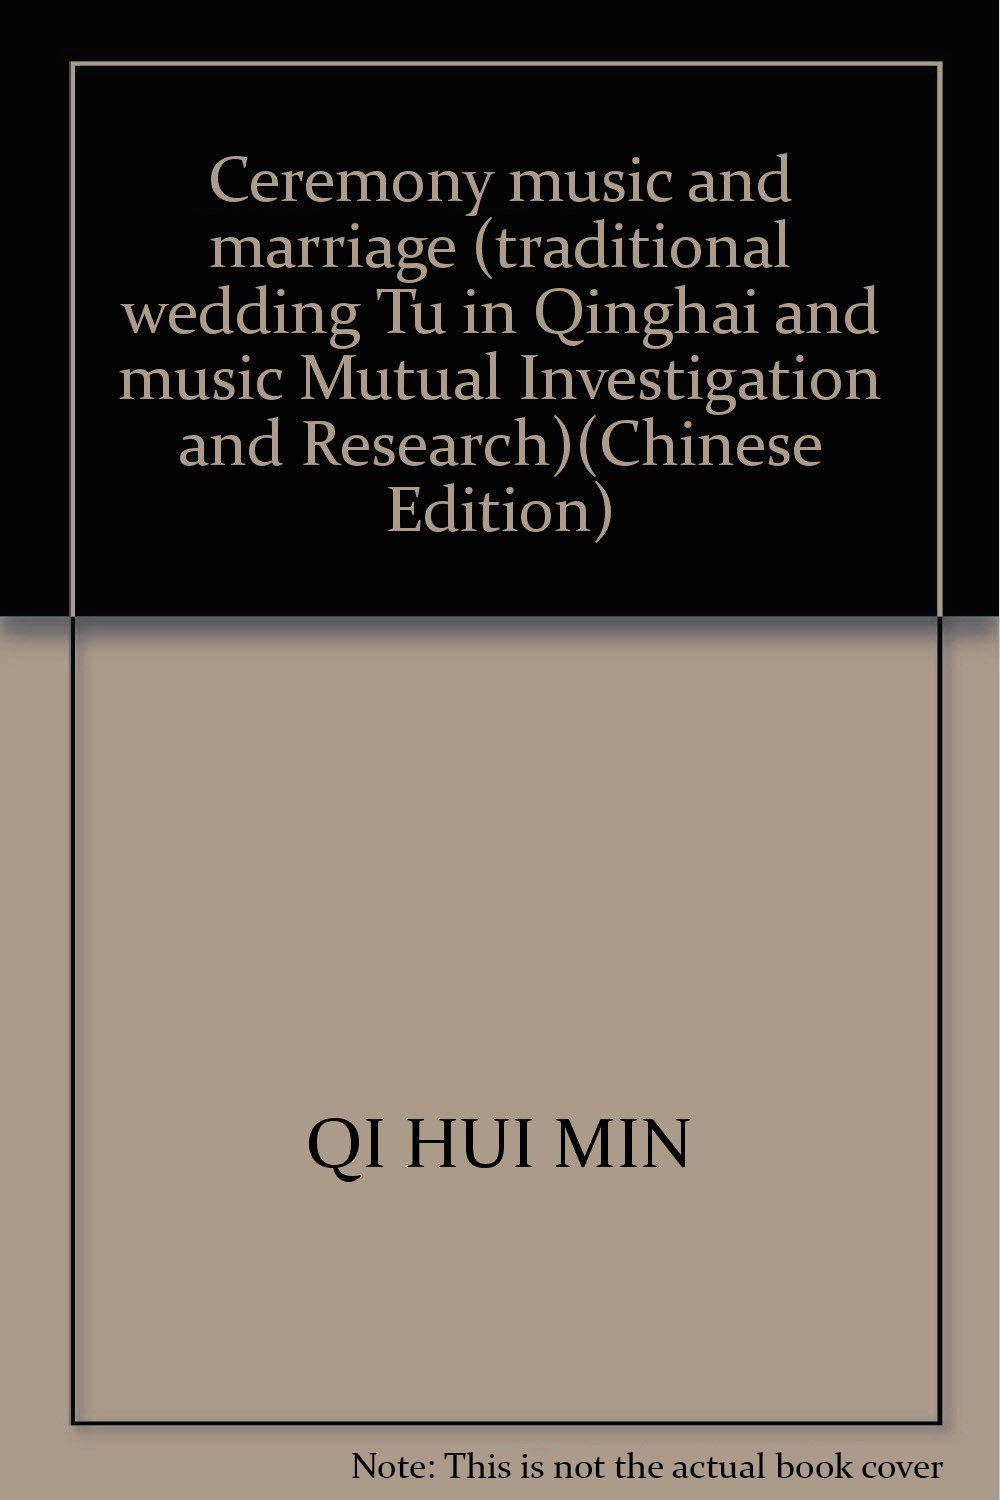 Ceremony music and marriage (traditional wedding Tu in Qinghai and music Mutual Investigation and Research)(Chinese Edition)